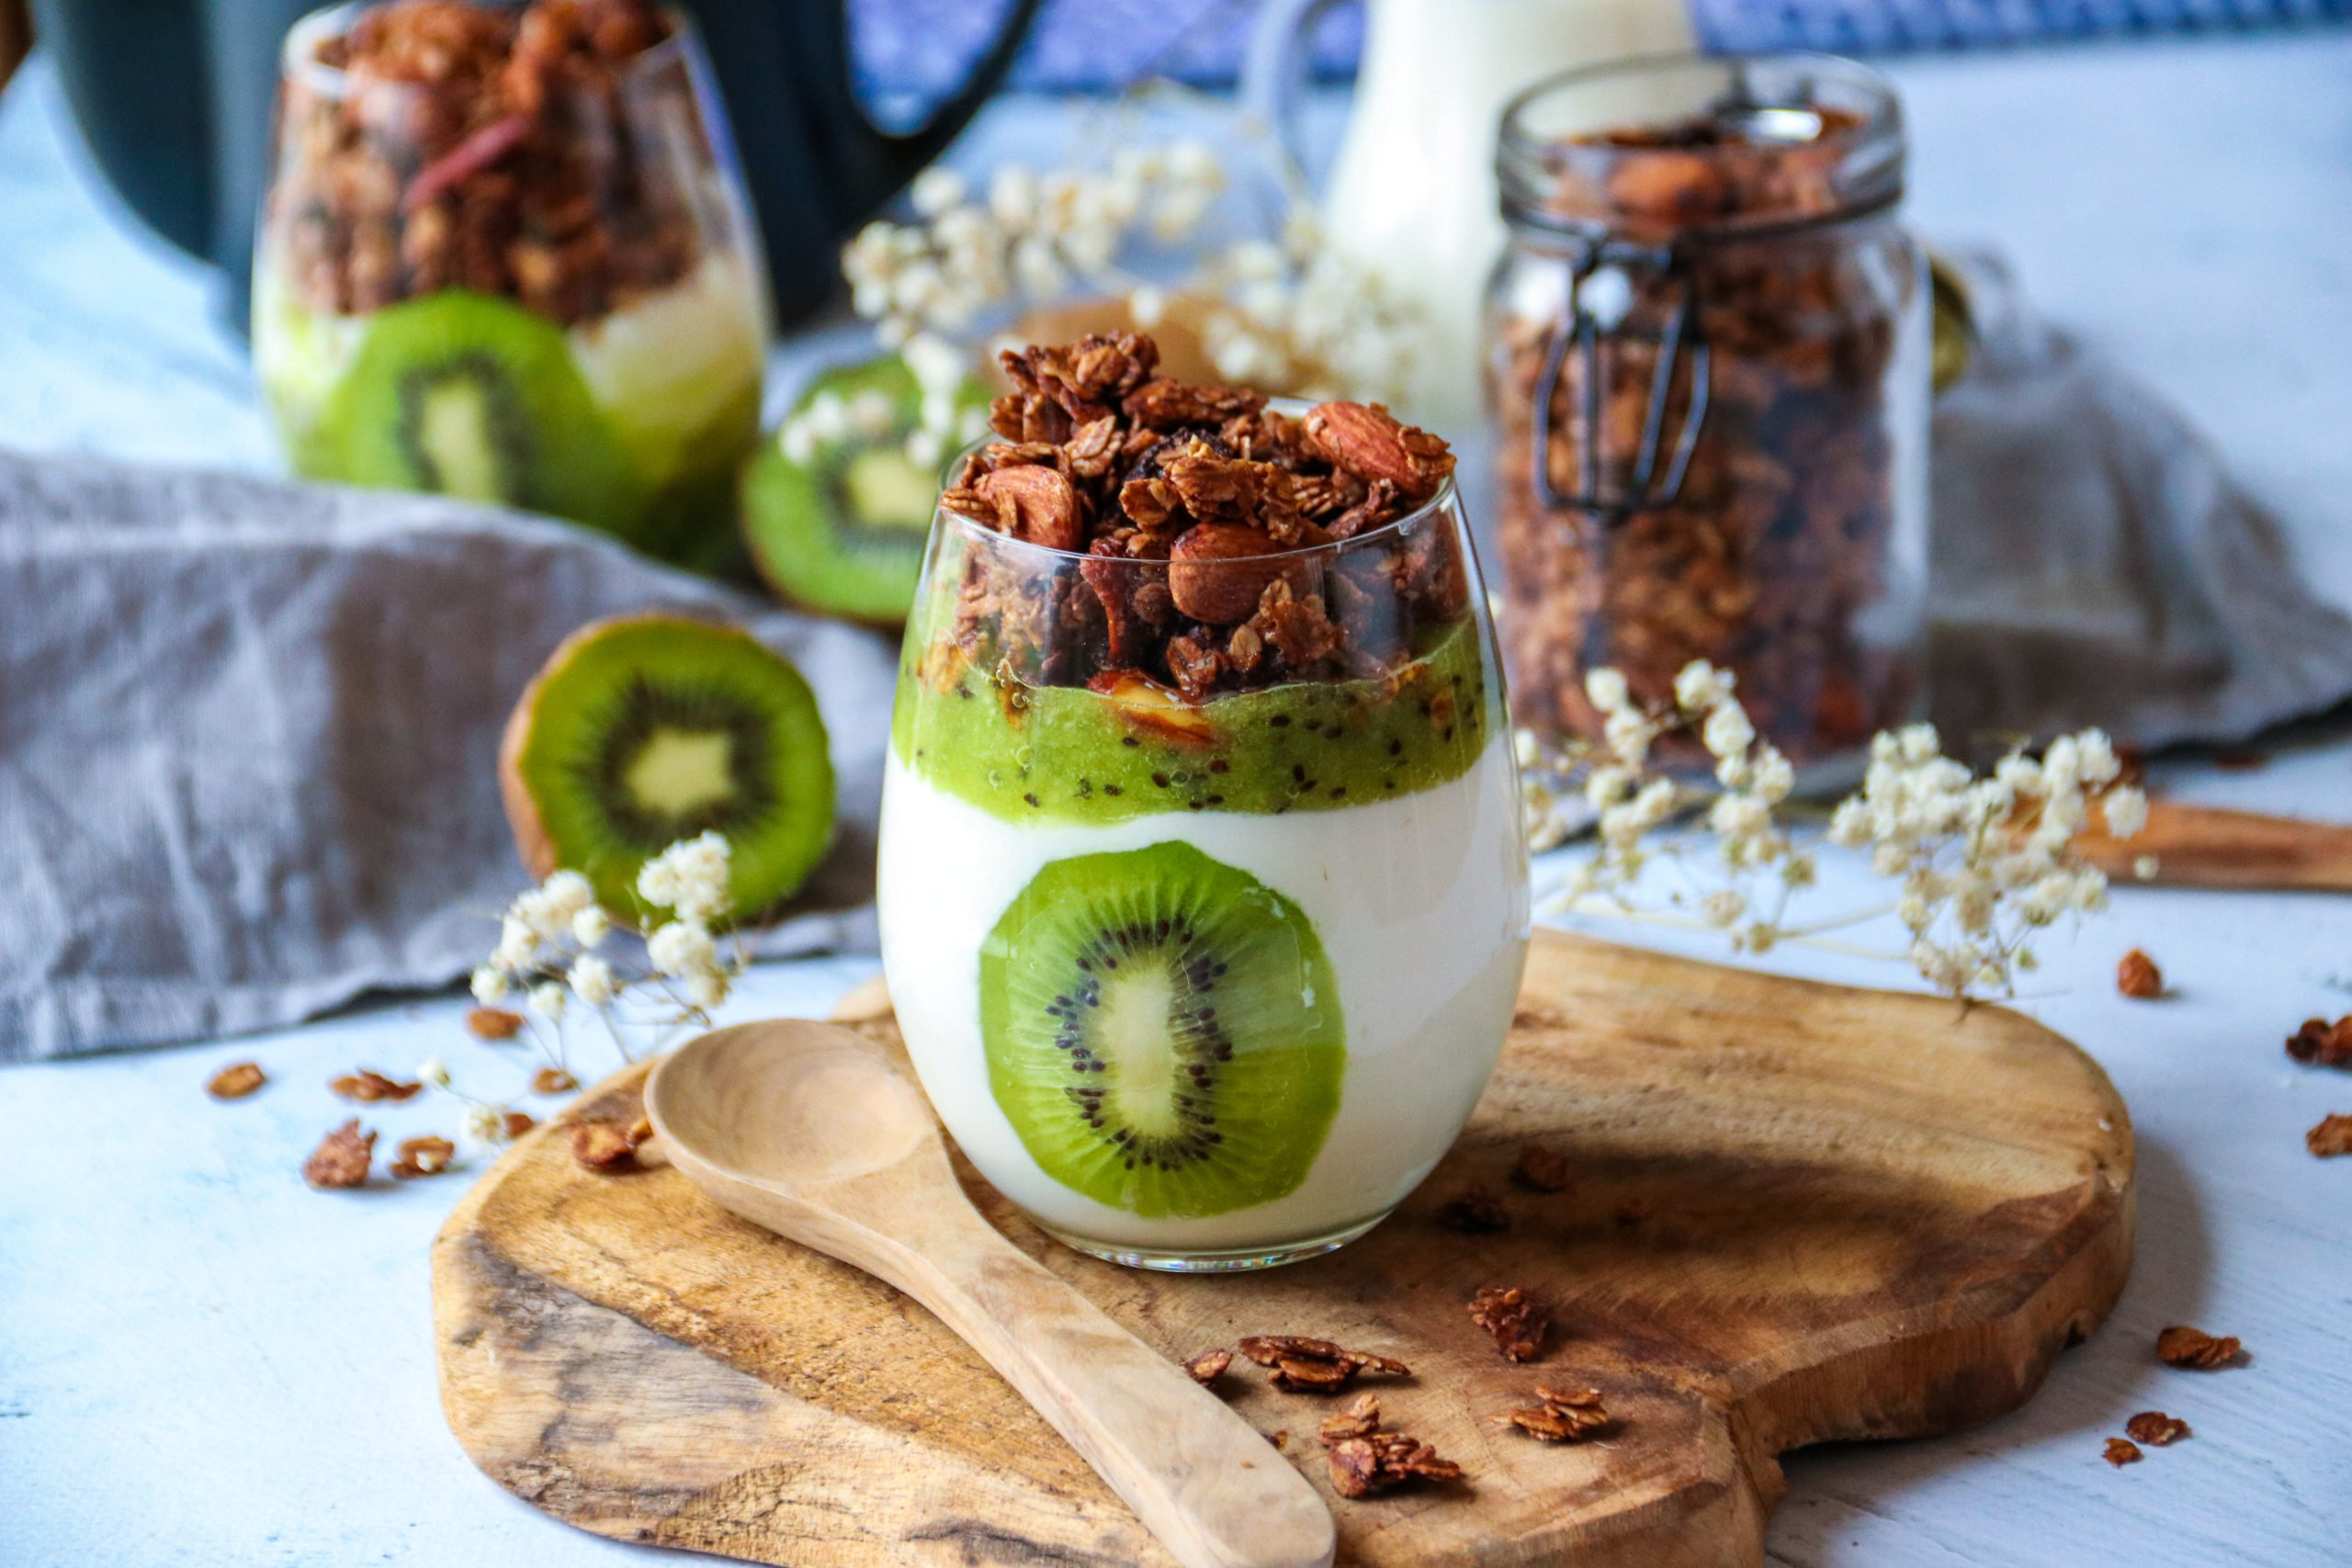 Verrines healthy au kiwi de France et son granola au chocolat